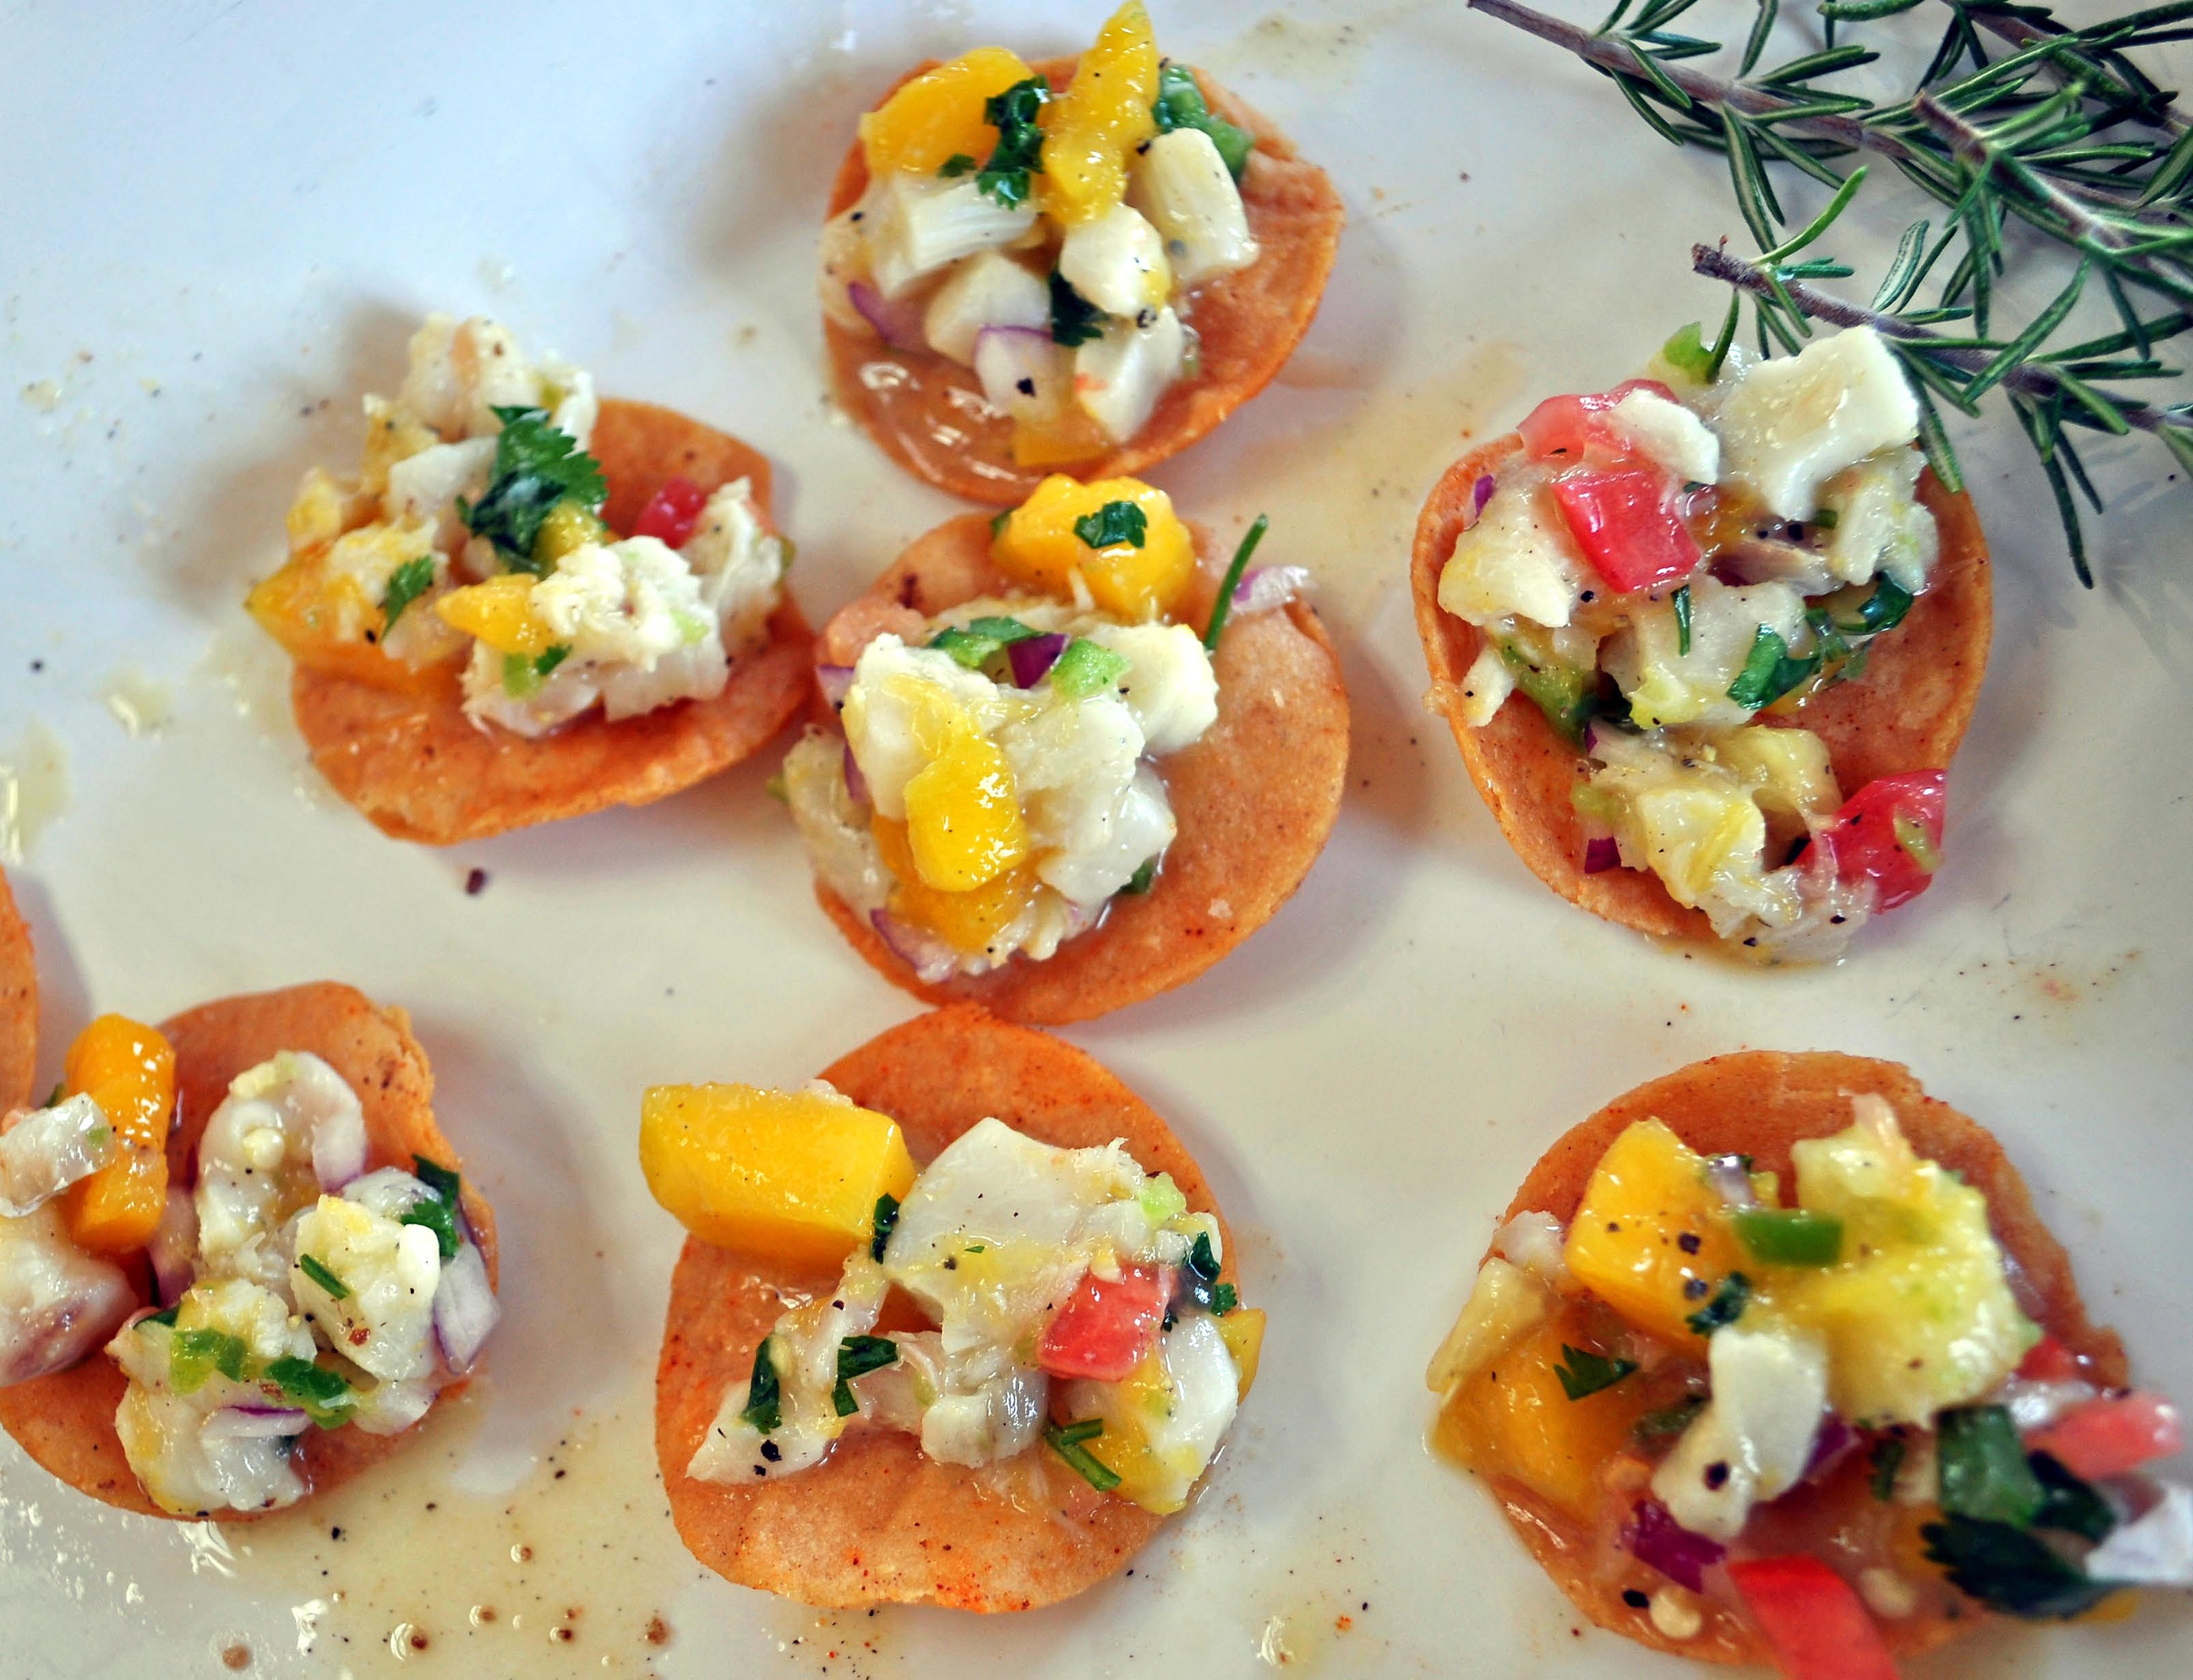 Ceviche Tostadas | Food and Wine Safari